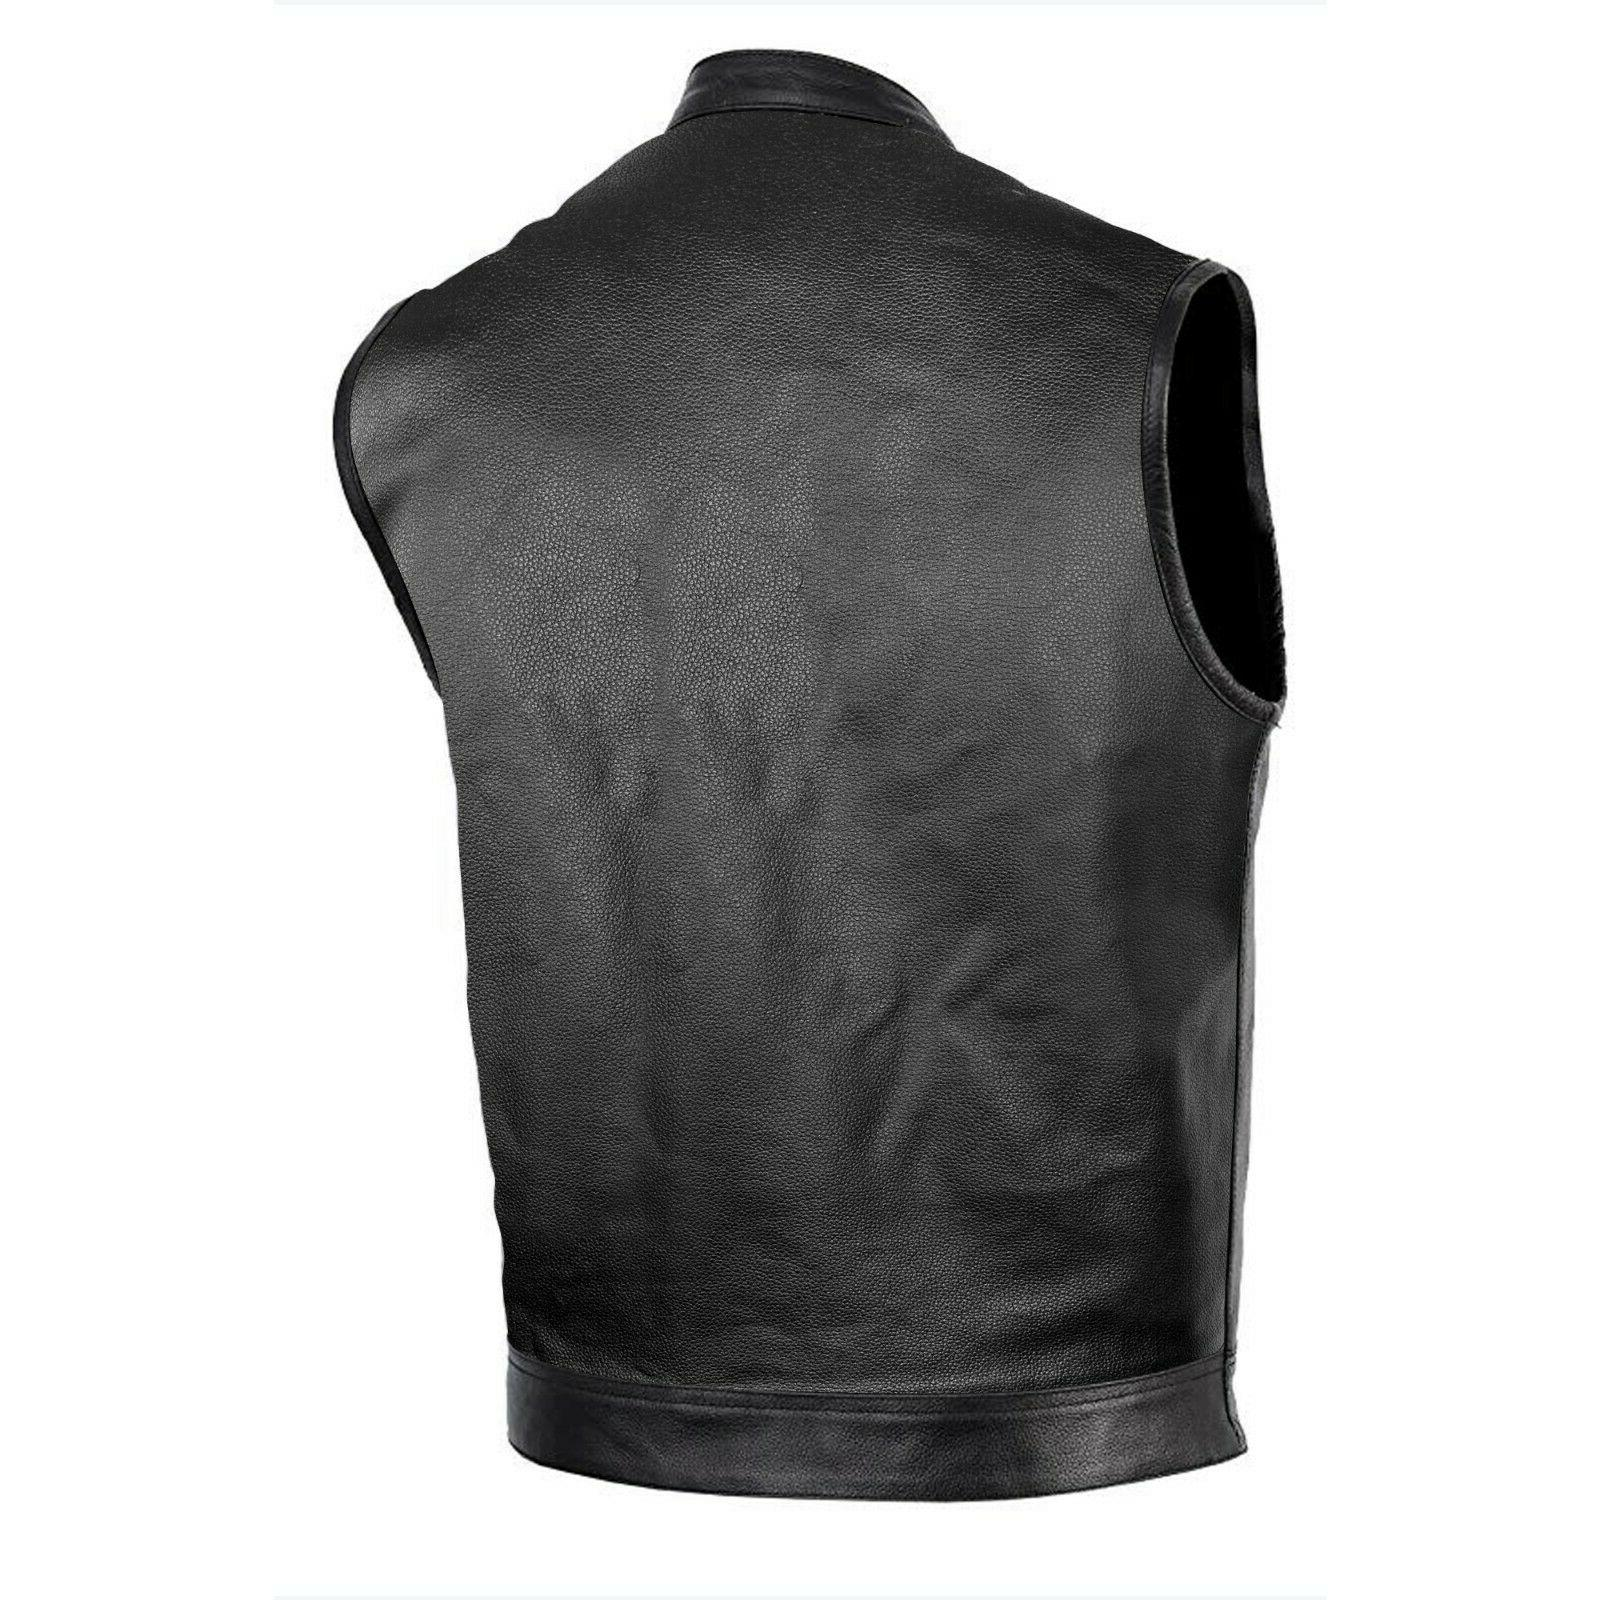 DEFY™ Motorcycle Club Leather Vest Concealed Carry